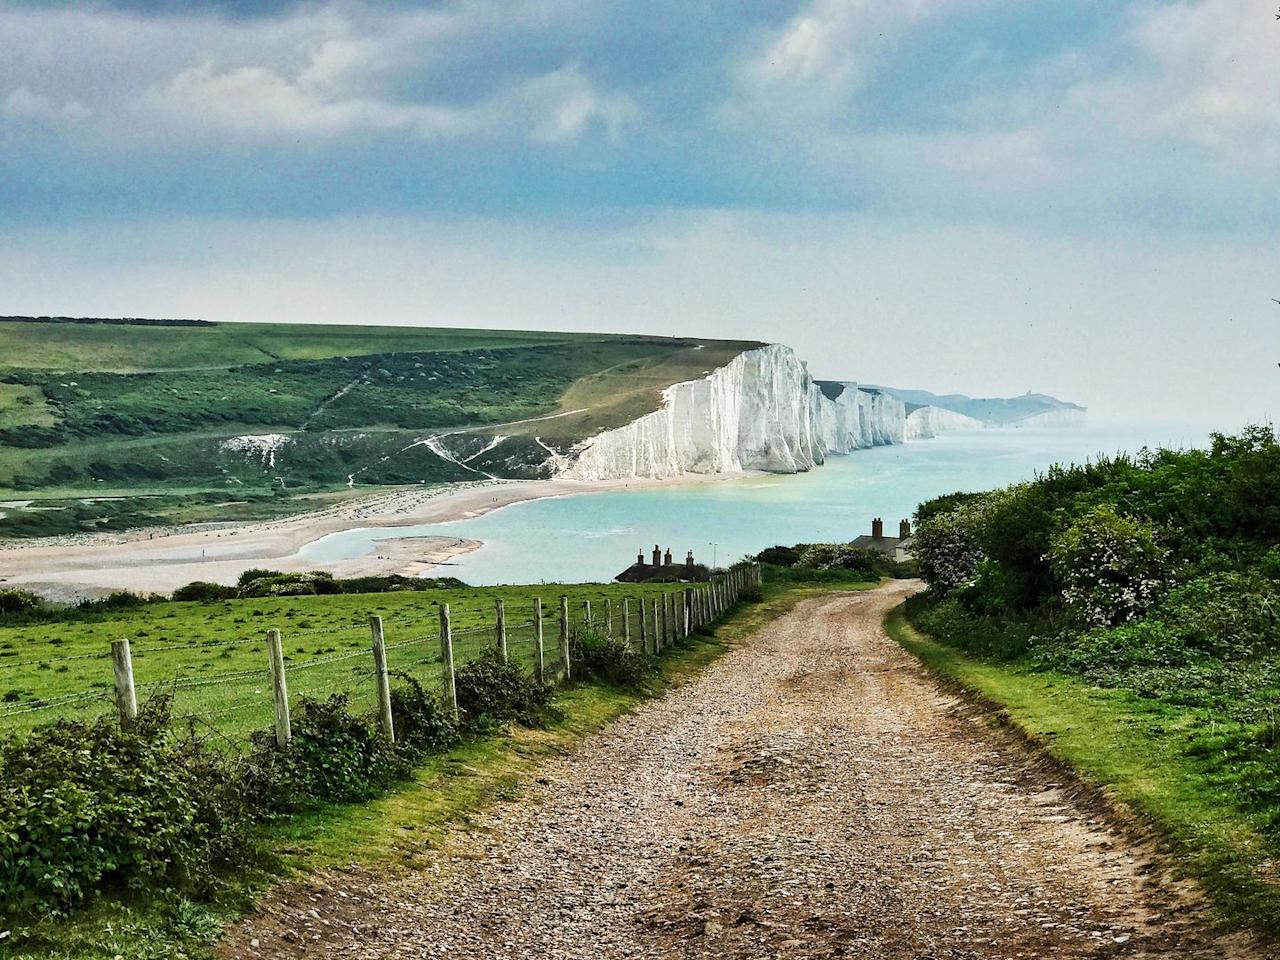 """<p>A range of chalk hills that extend for a whopping 260 square miles across the south-eastern coastal counties of England from Hampshire to East Sussex, the South Downs are a must-see when considering a day trip out of the Big Smoke. </p><p>There are several ways to explore the Downs but we suggest doing so by foot on the Seven Sisters <a href=""""https://www.countryfile.com/go-outdoors/walks/walk-seven-sisters-east-sussex/"""" target=""""_blank"""">route</a> which covers approximately 3.7 miles (2 hours) and overlooks the sea. </p><p><strong>Distance from London</strong>: 61.4 miles</p><p><strong>How to get there</strong>: London Waterloo to Petersfield via <a href=""""https://www.thetrainline.com/book/results?journeySearchType=single&origin=bc3771e2481f260d7c07c163139d187d&destination=efe712fb159e3d3bc15e08a48e92dcc2&outwardDate=2020-07-16T14%3A15%3A00&outwardDateType=departAfter&passengers%5B%5D=1990-07-16&selectExactTime=true&selectedOutward=H3qur204aA0%3D%3Aoxzcuqkc0U0%3D"""" target=""""_blank"""">train</a> (1hr 3mins)</p>"""